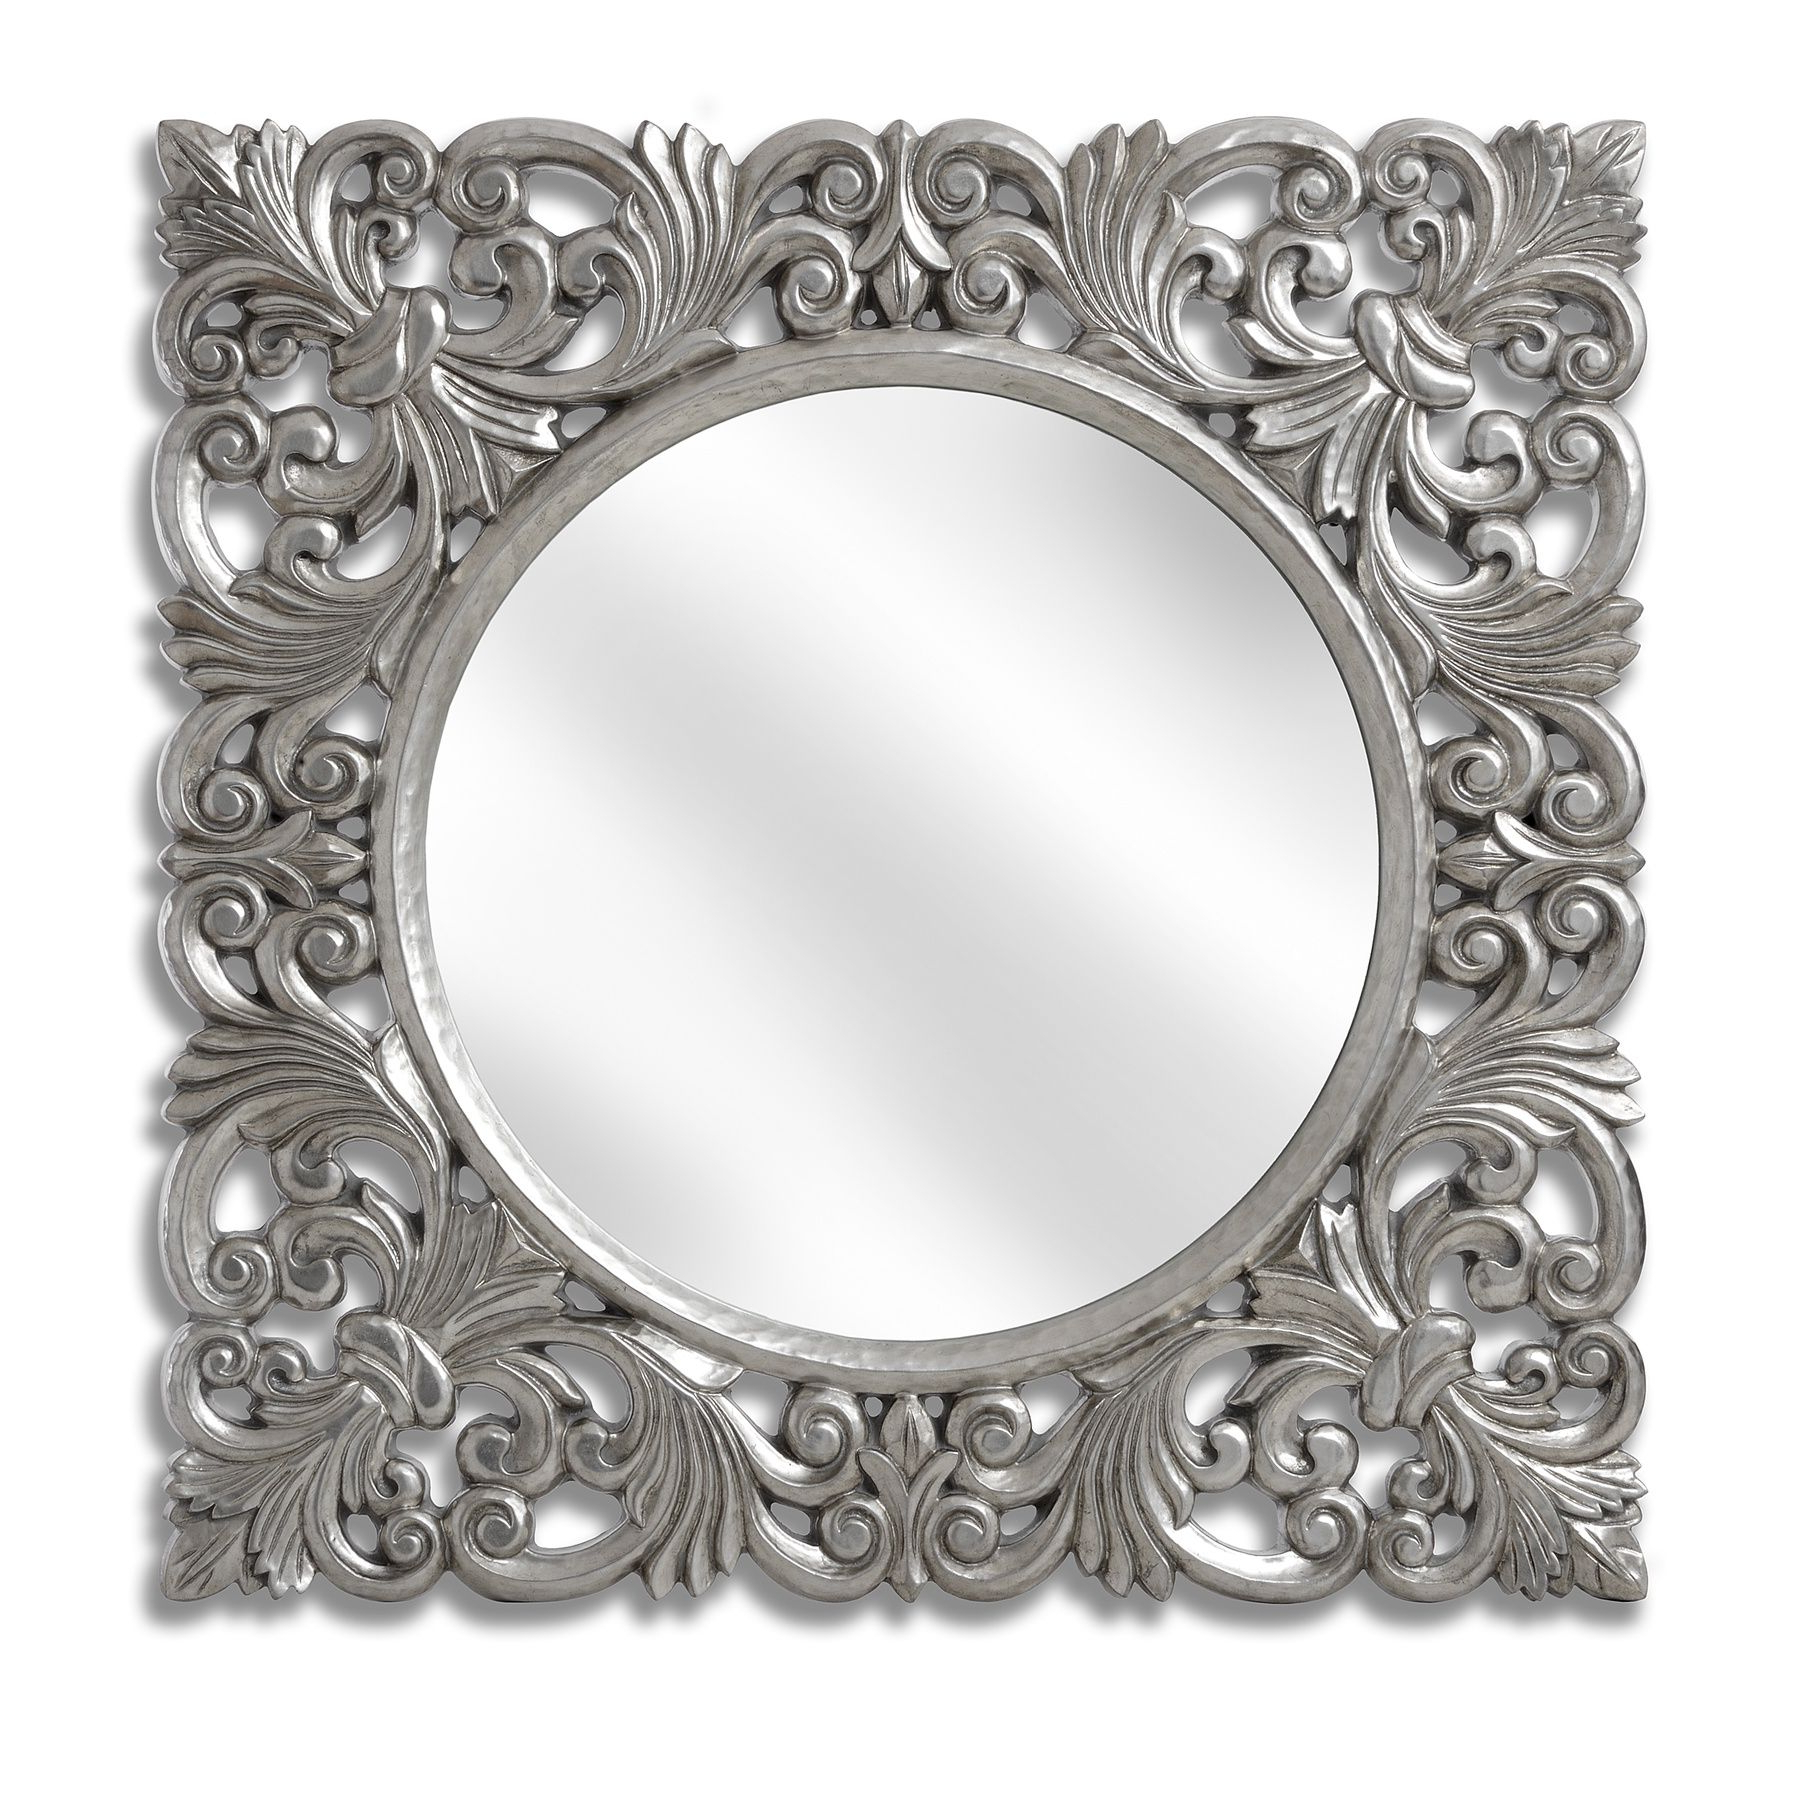 Baroque Silver Wall Mirror Pertaining To Newest Baroque Wall Mirrors (View 2 of 20)